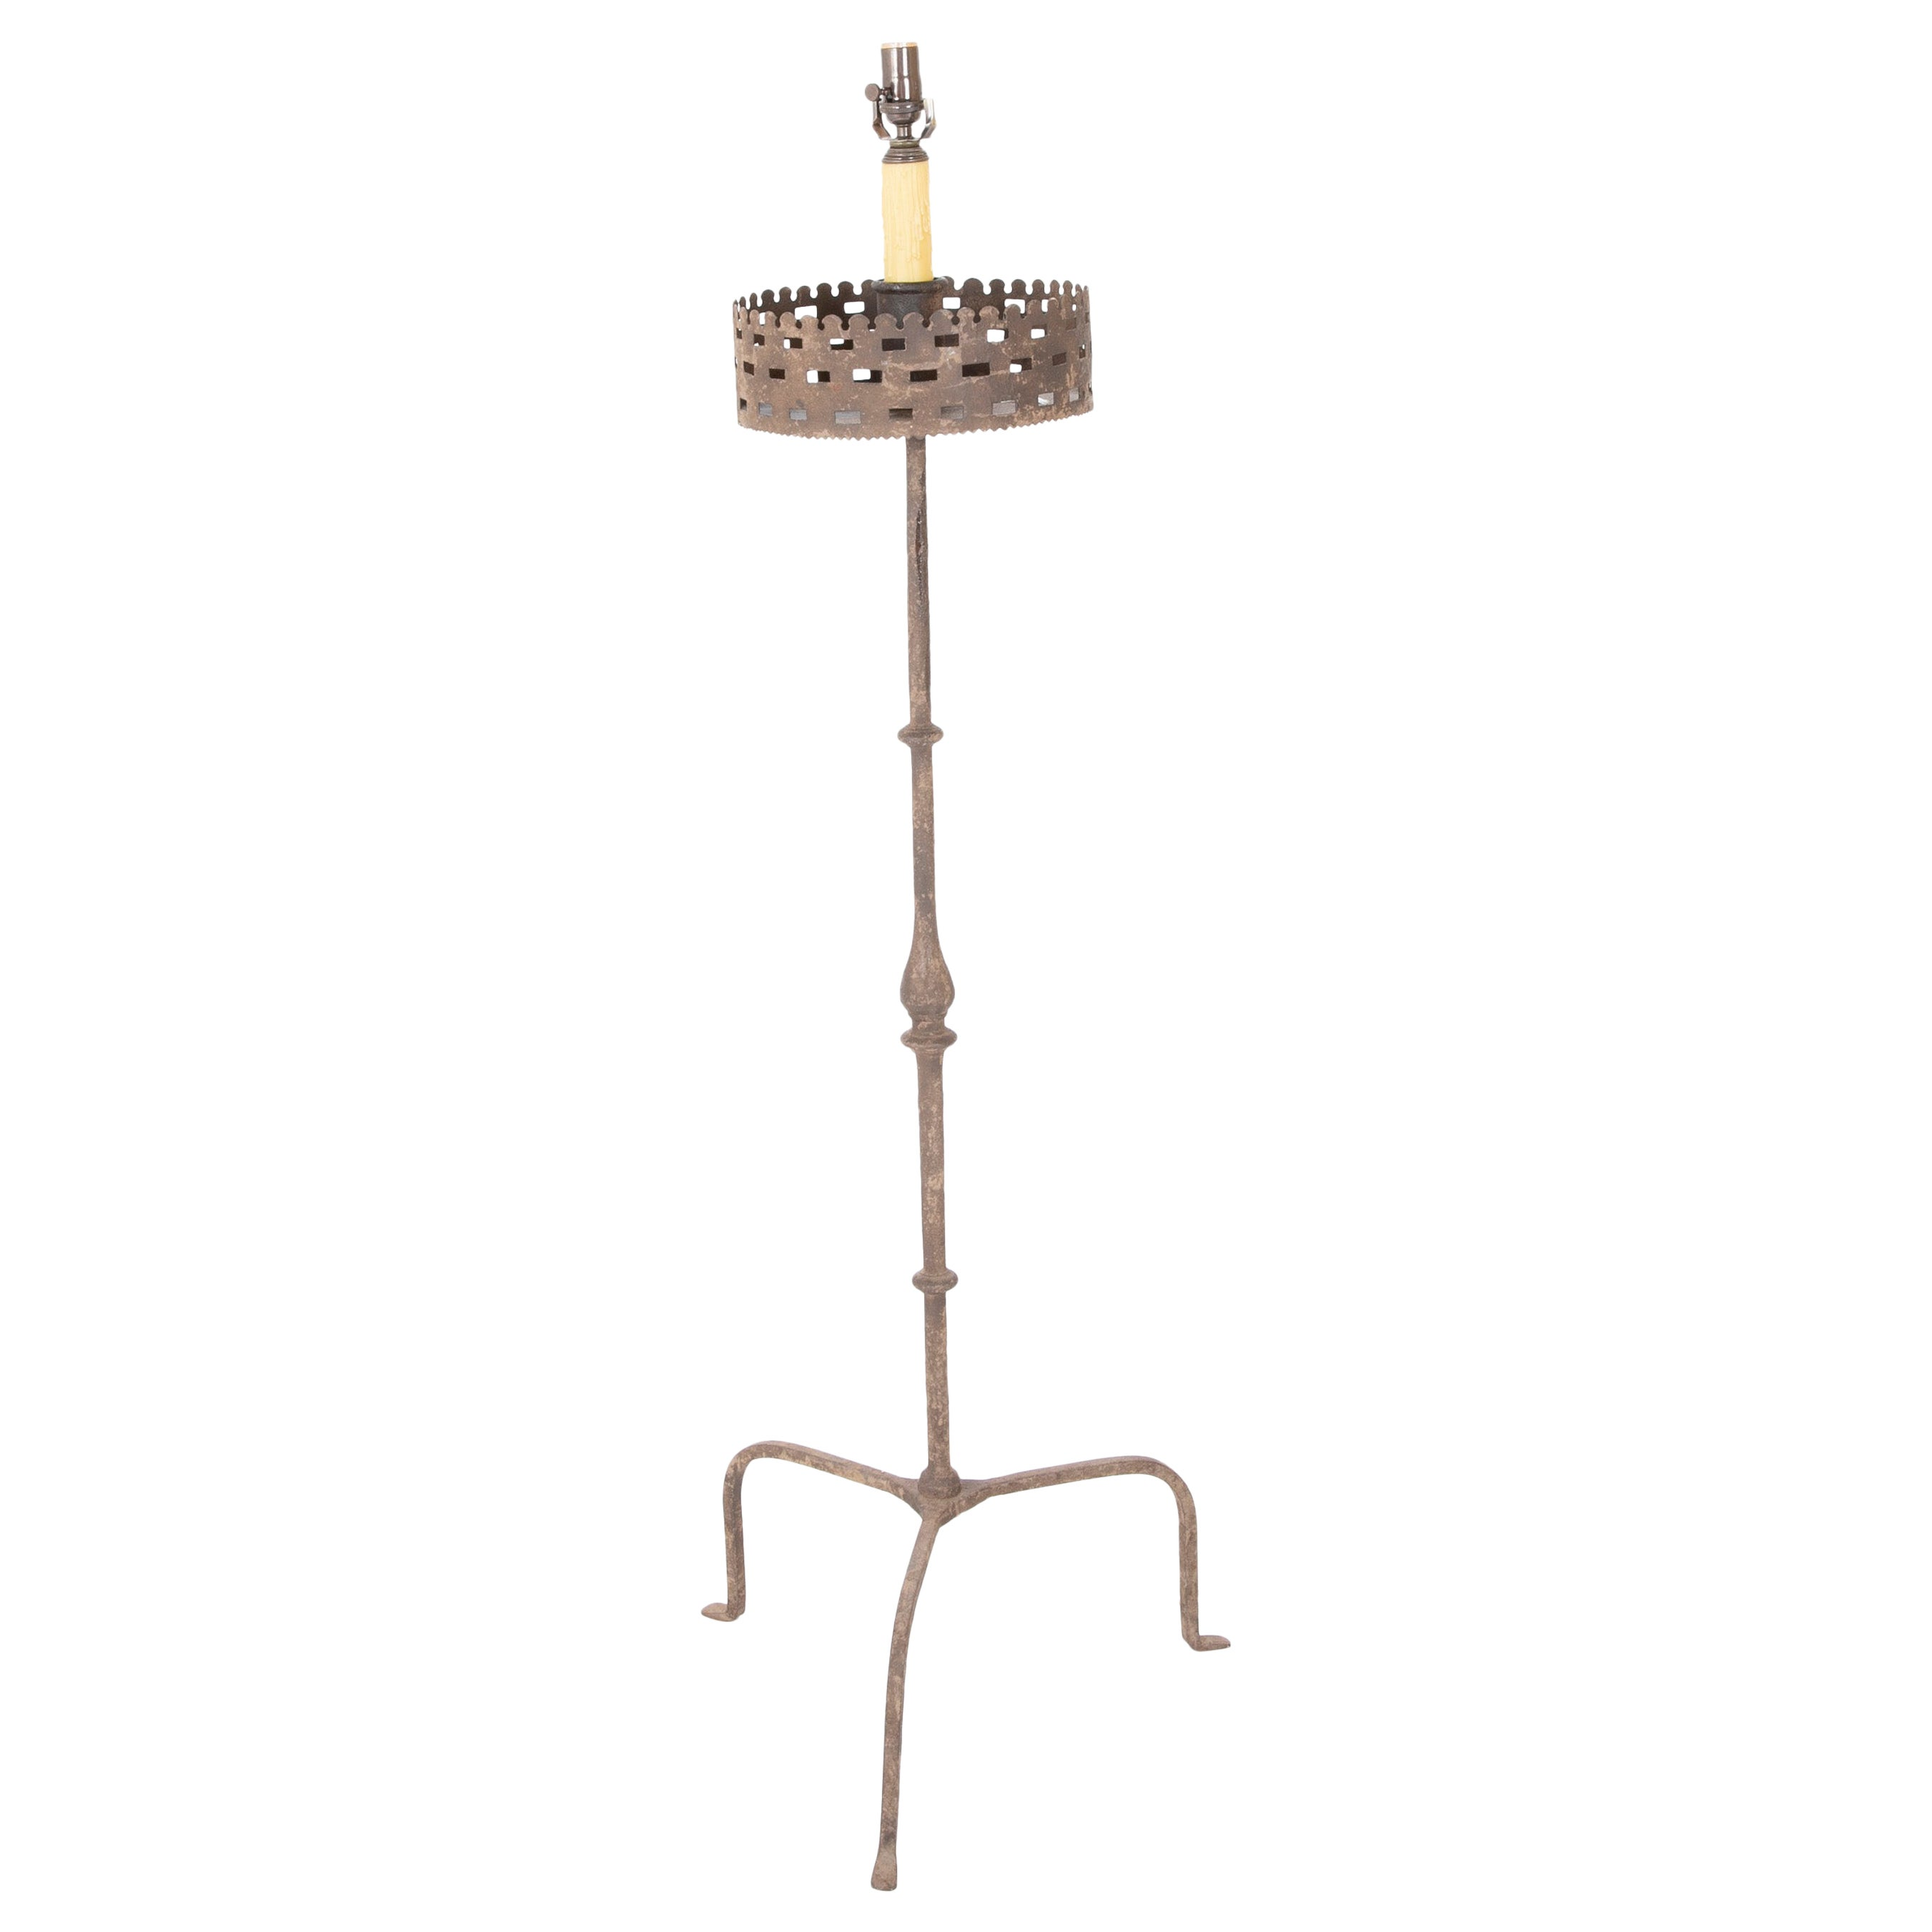 Handwrought Iron Pricket Stick Now as Lamp with Crenalated Bobeche